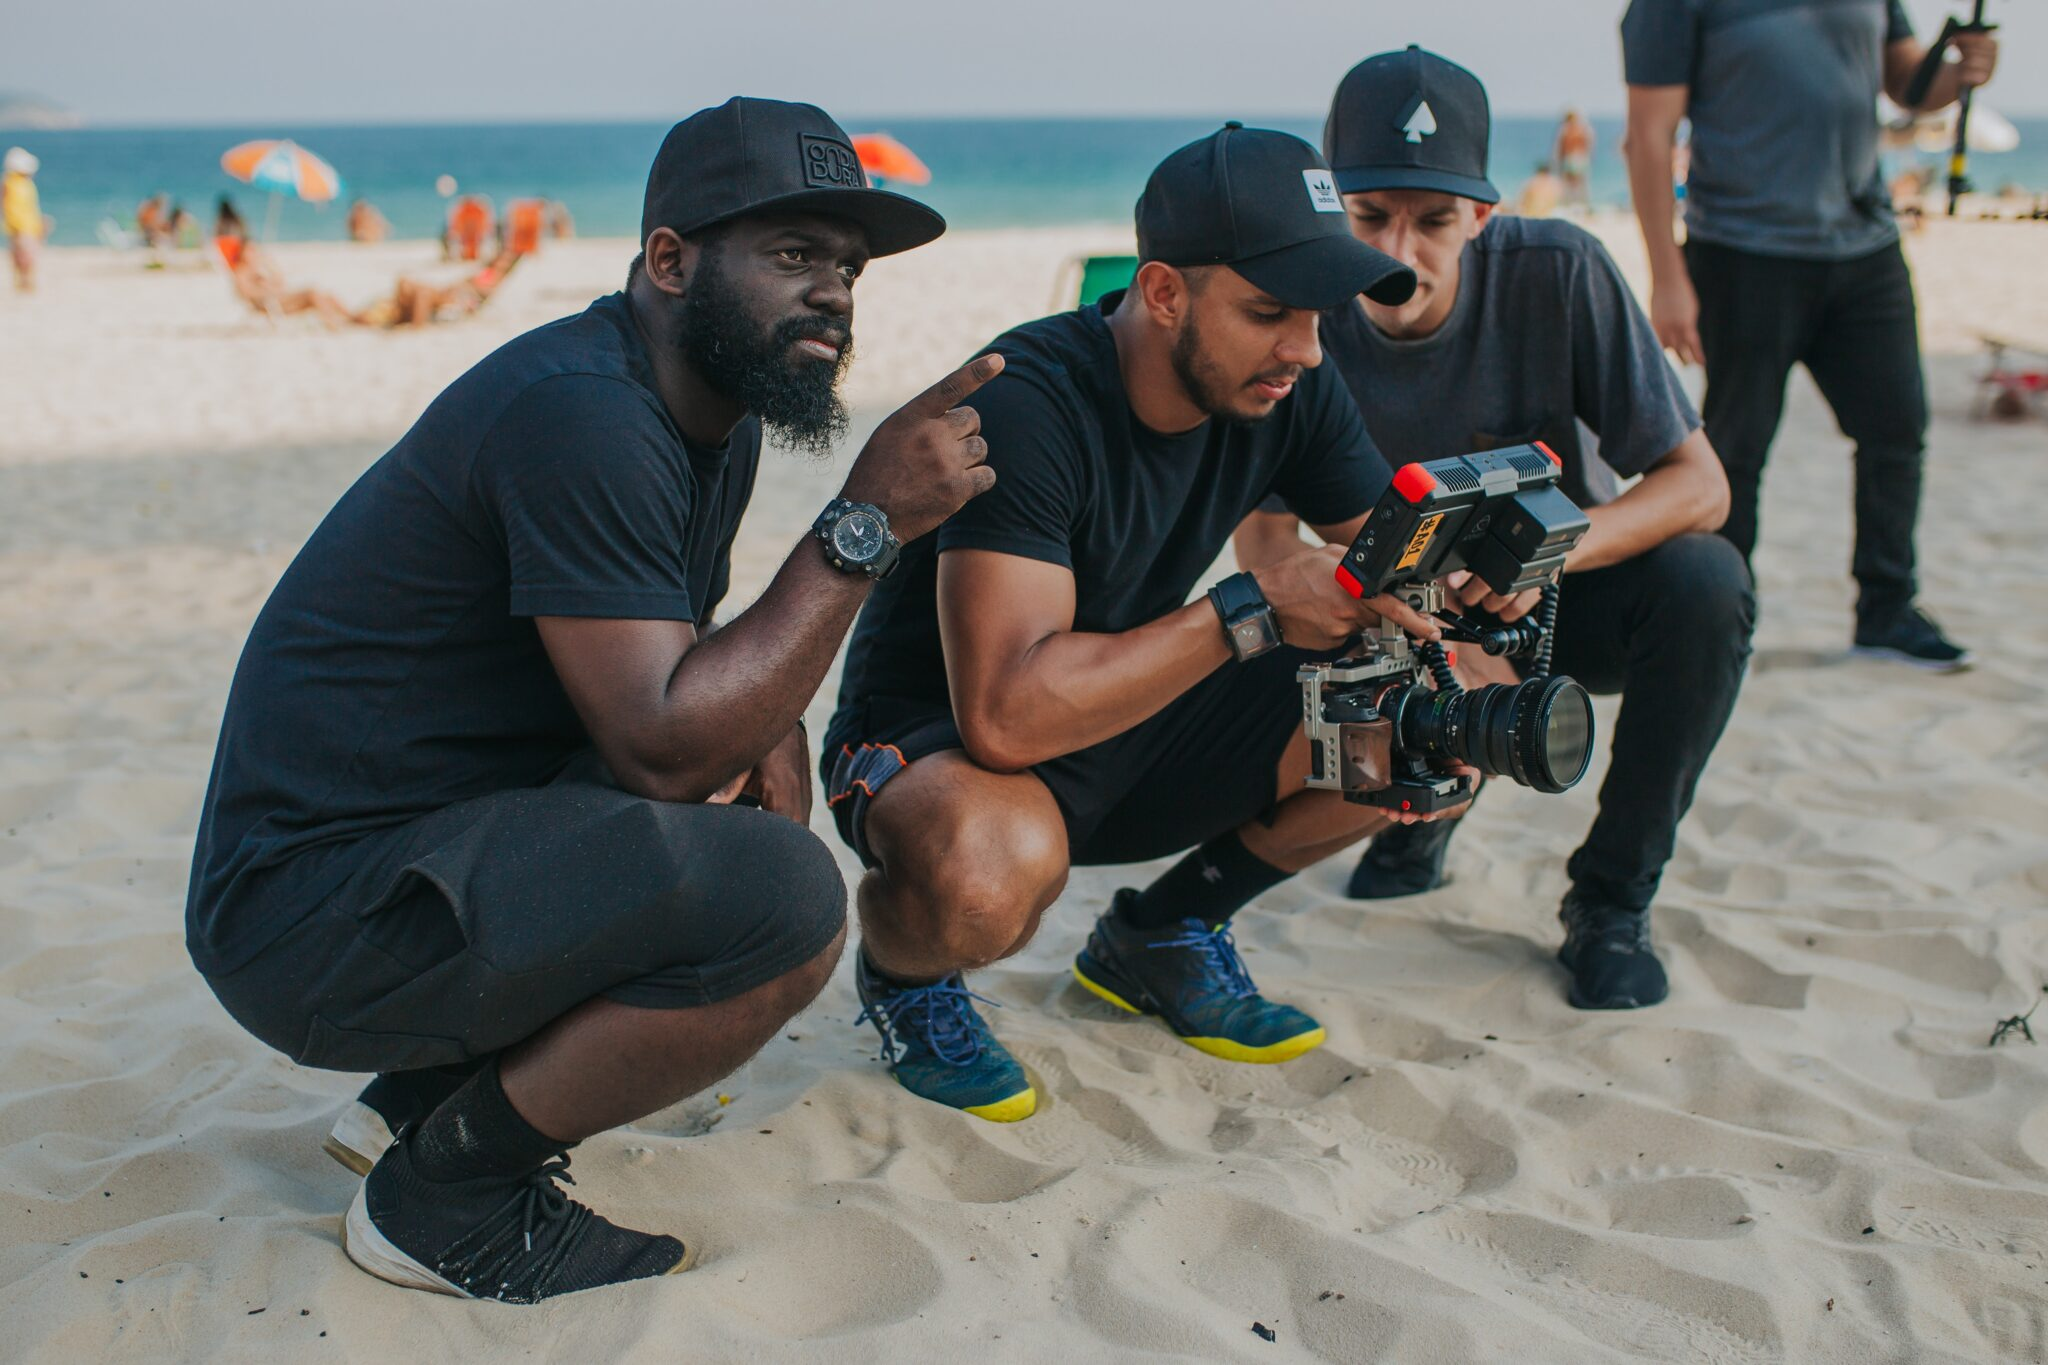 photo of of three men on a beach as part of a production crew for film or TV